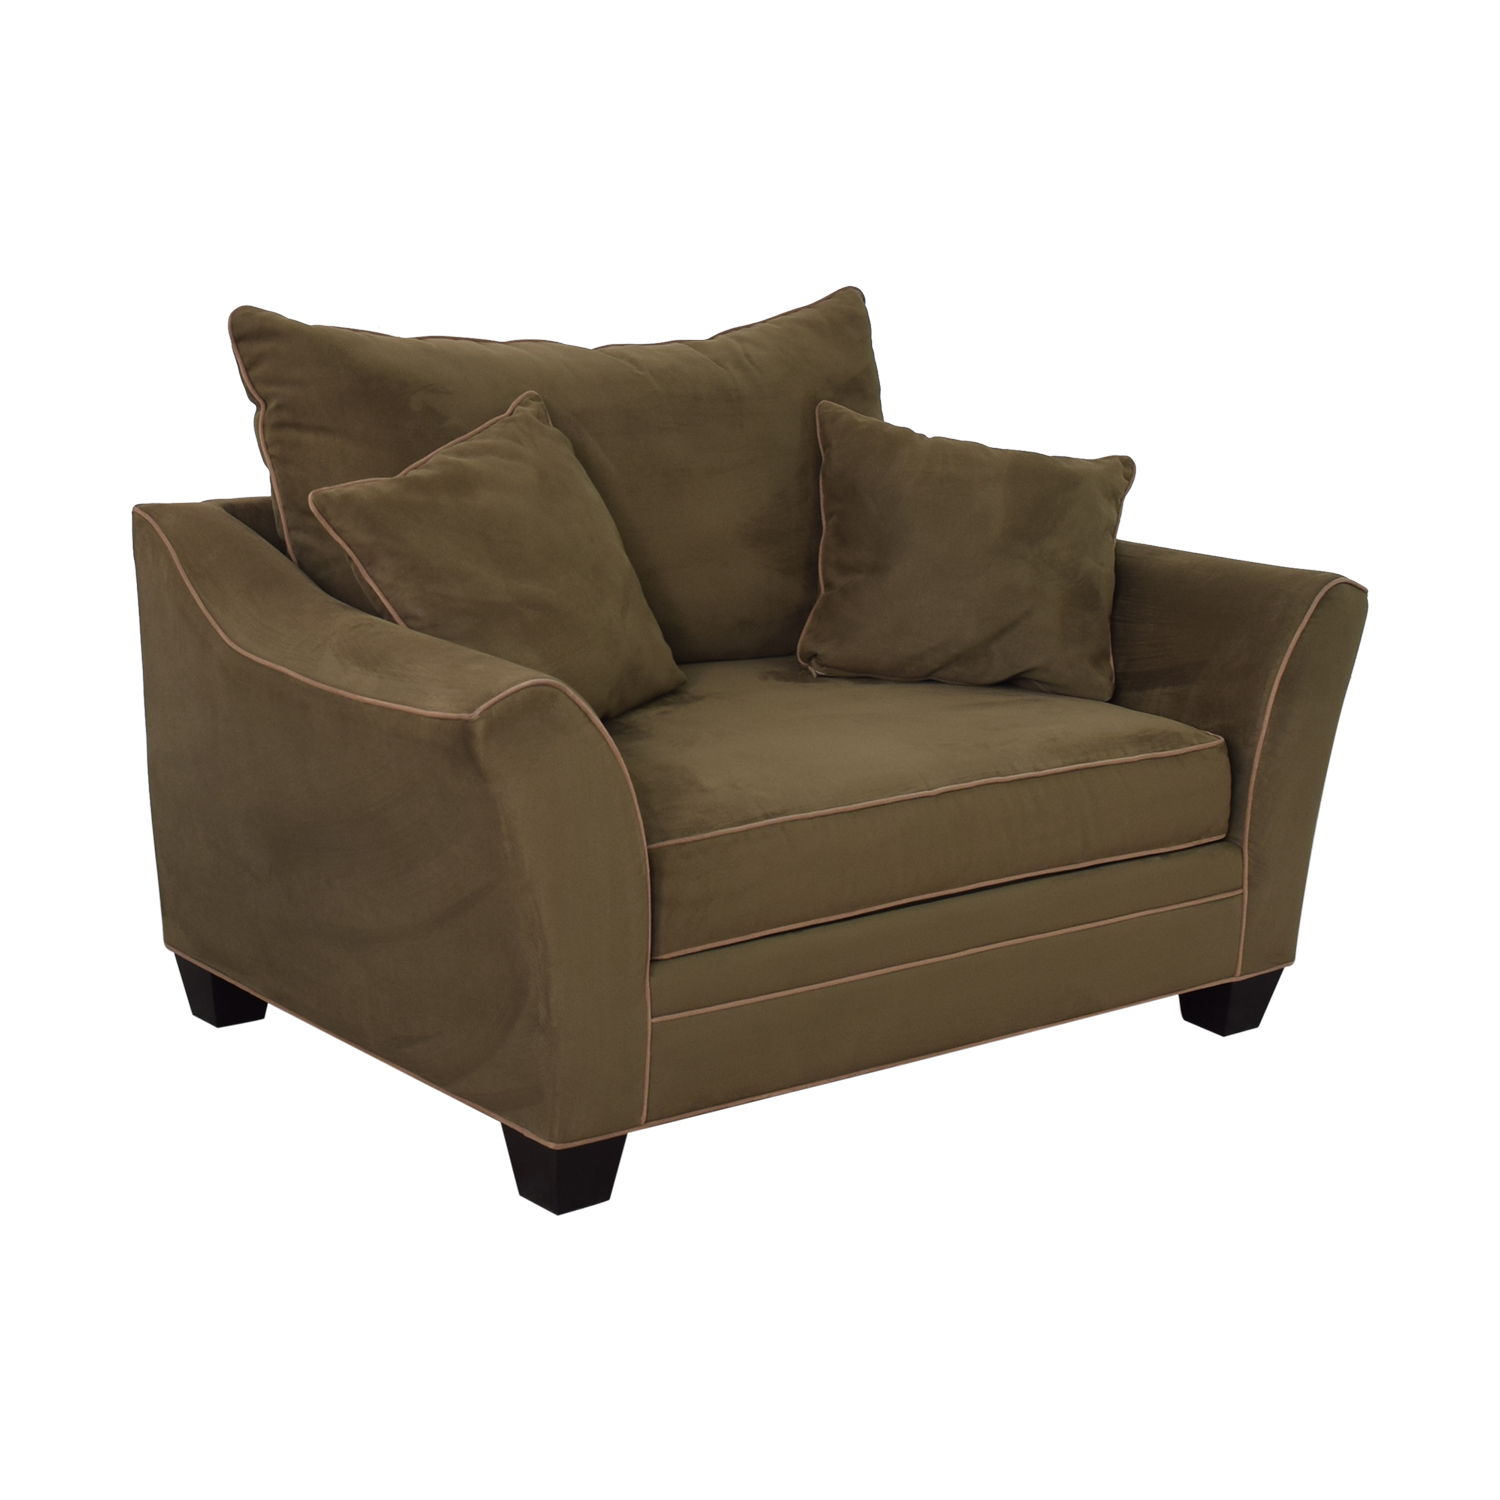 shop Raymour & Flanigan Briarwood Microfiber Chair-and-a-Half Raymour & Flanigan Chairs